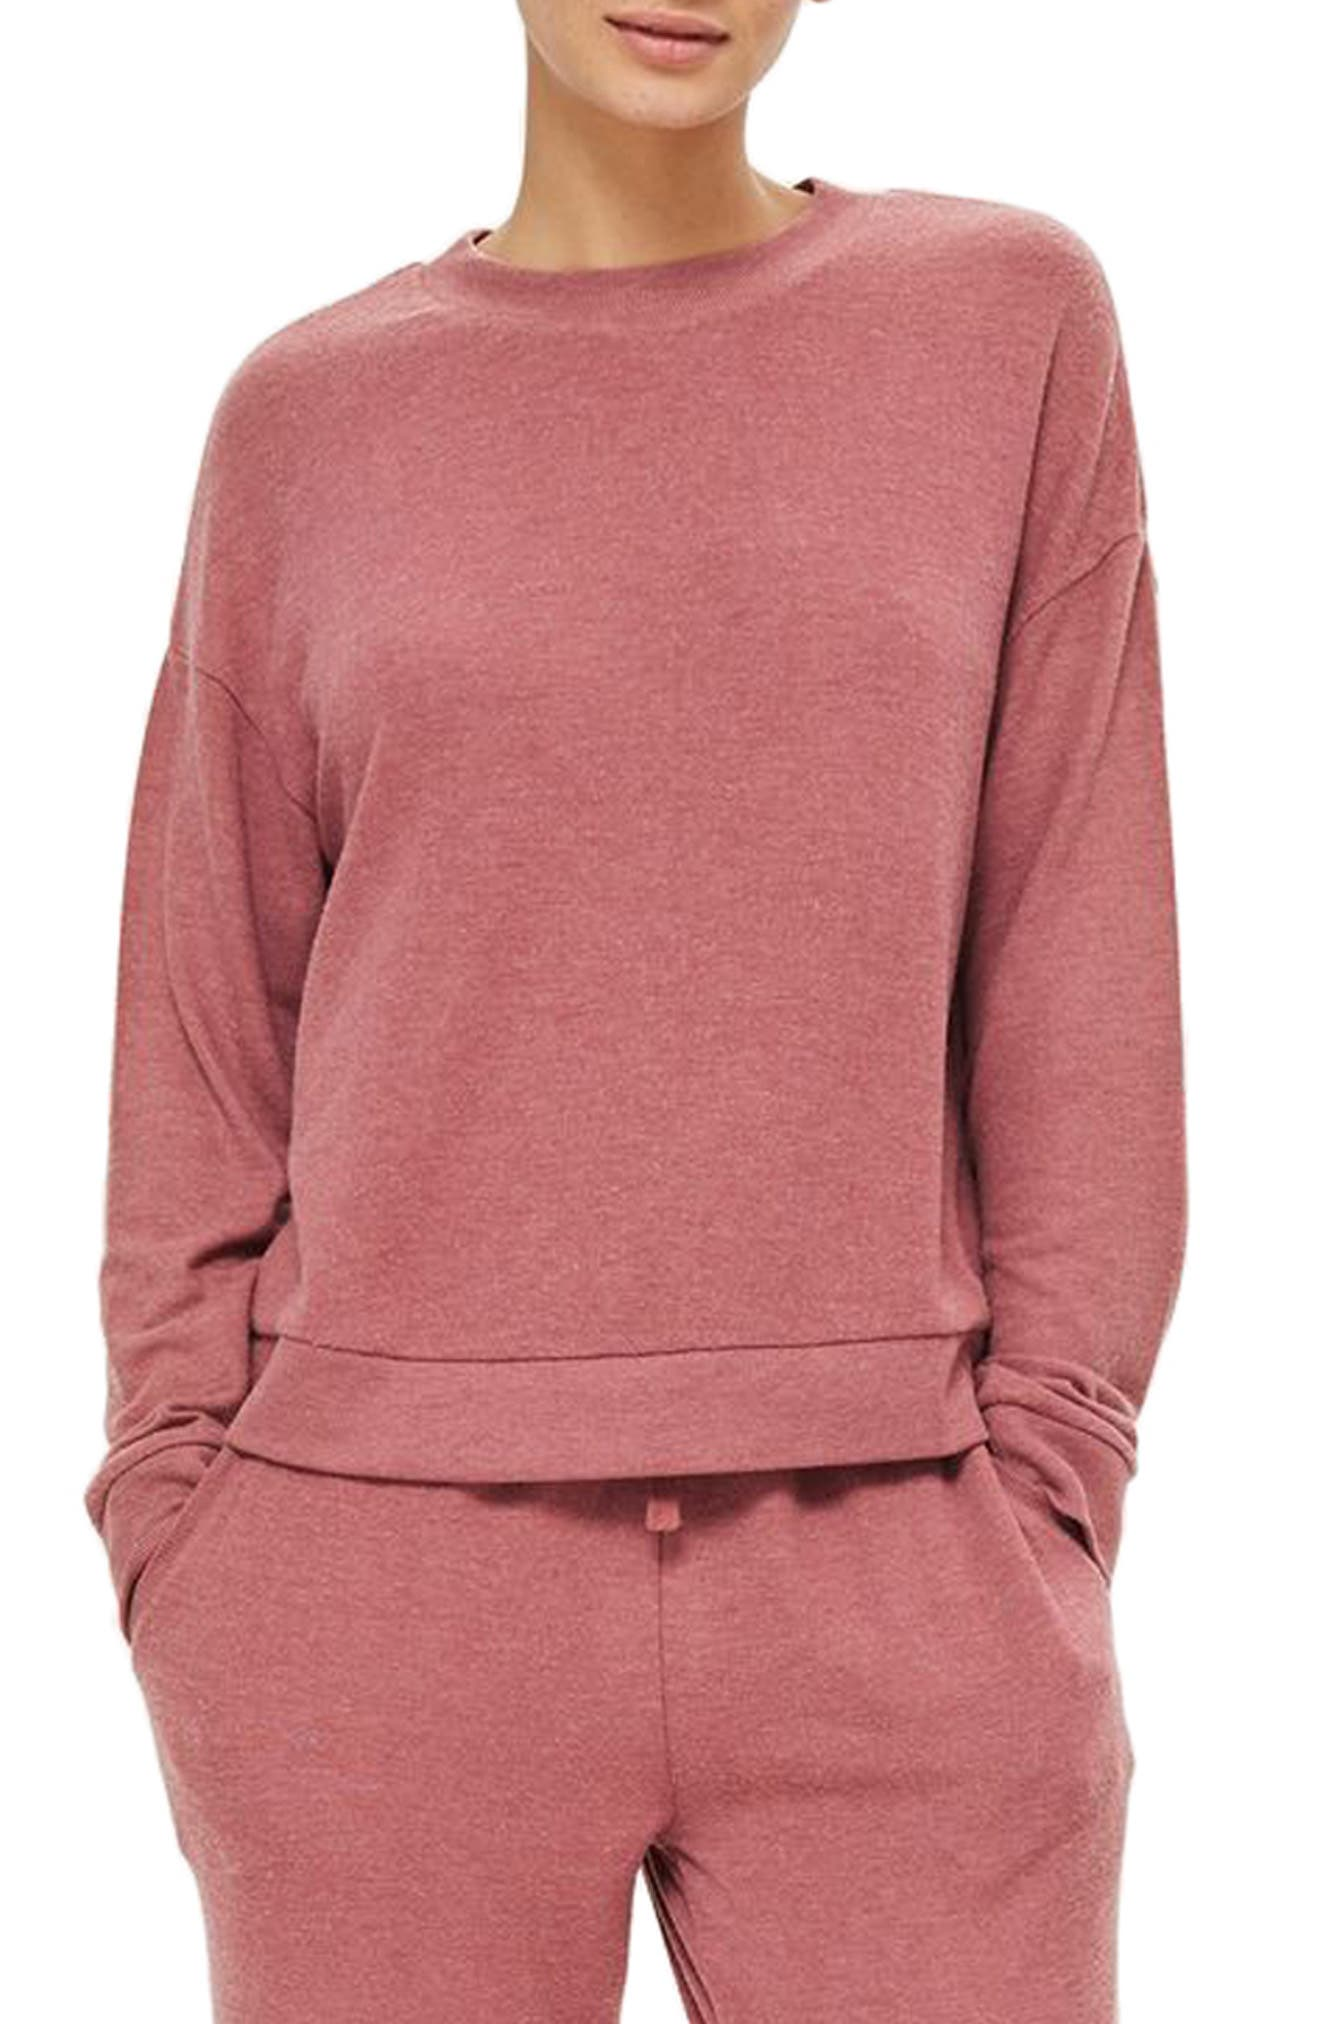 Rose Sweatshirt,                             Main thumbnail 1, color,                             Pink